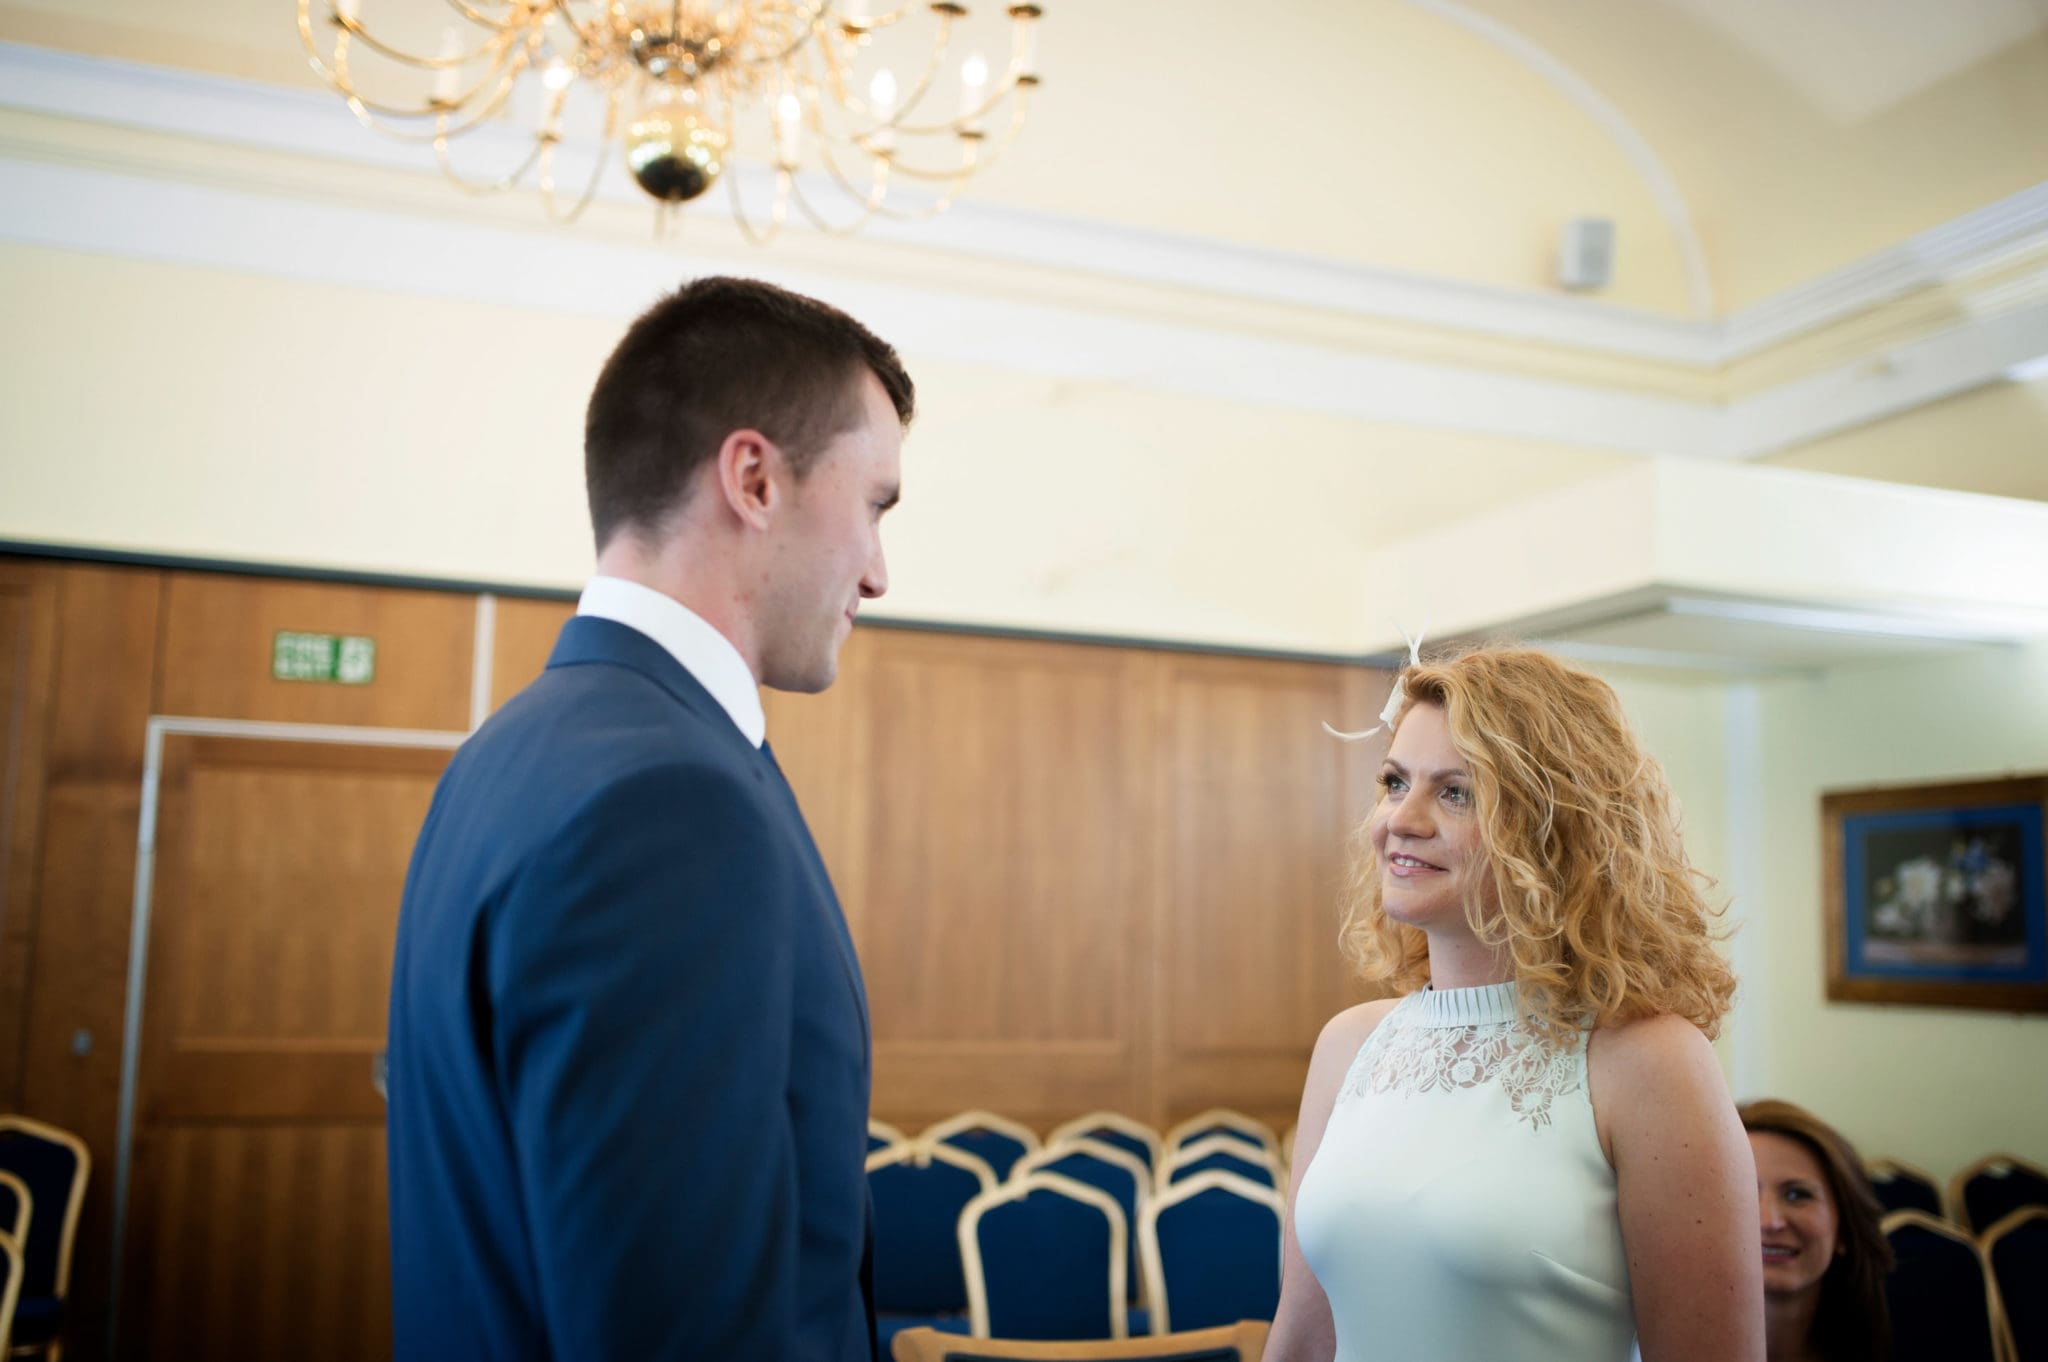 groon saying his vows Bromley on Bow Registry office, London UK Wedding photography ceremony room wioth the guest